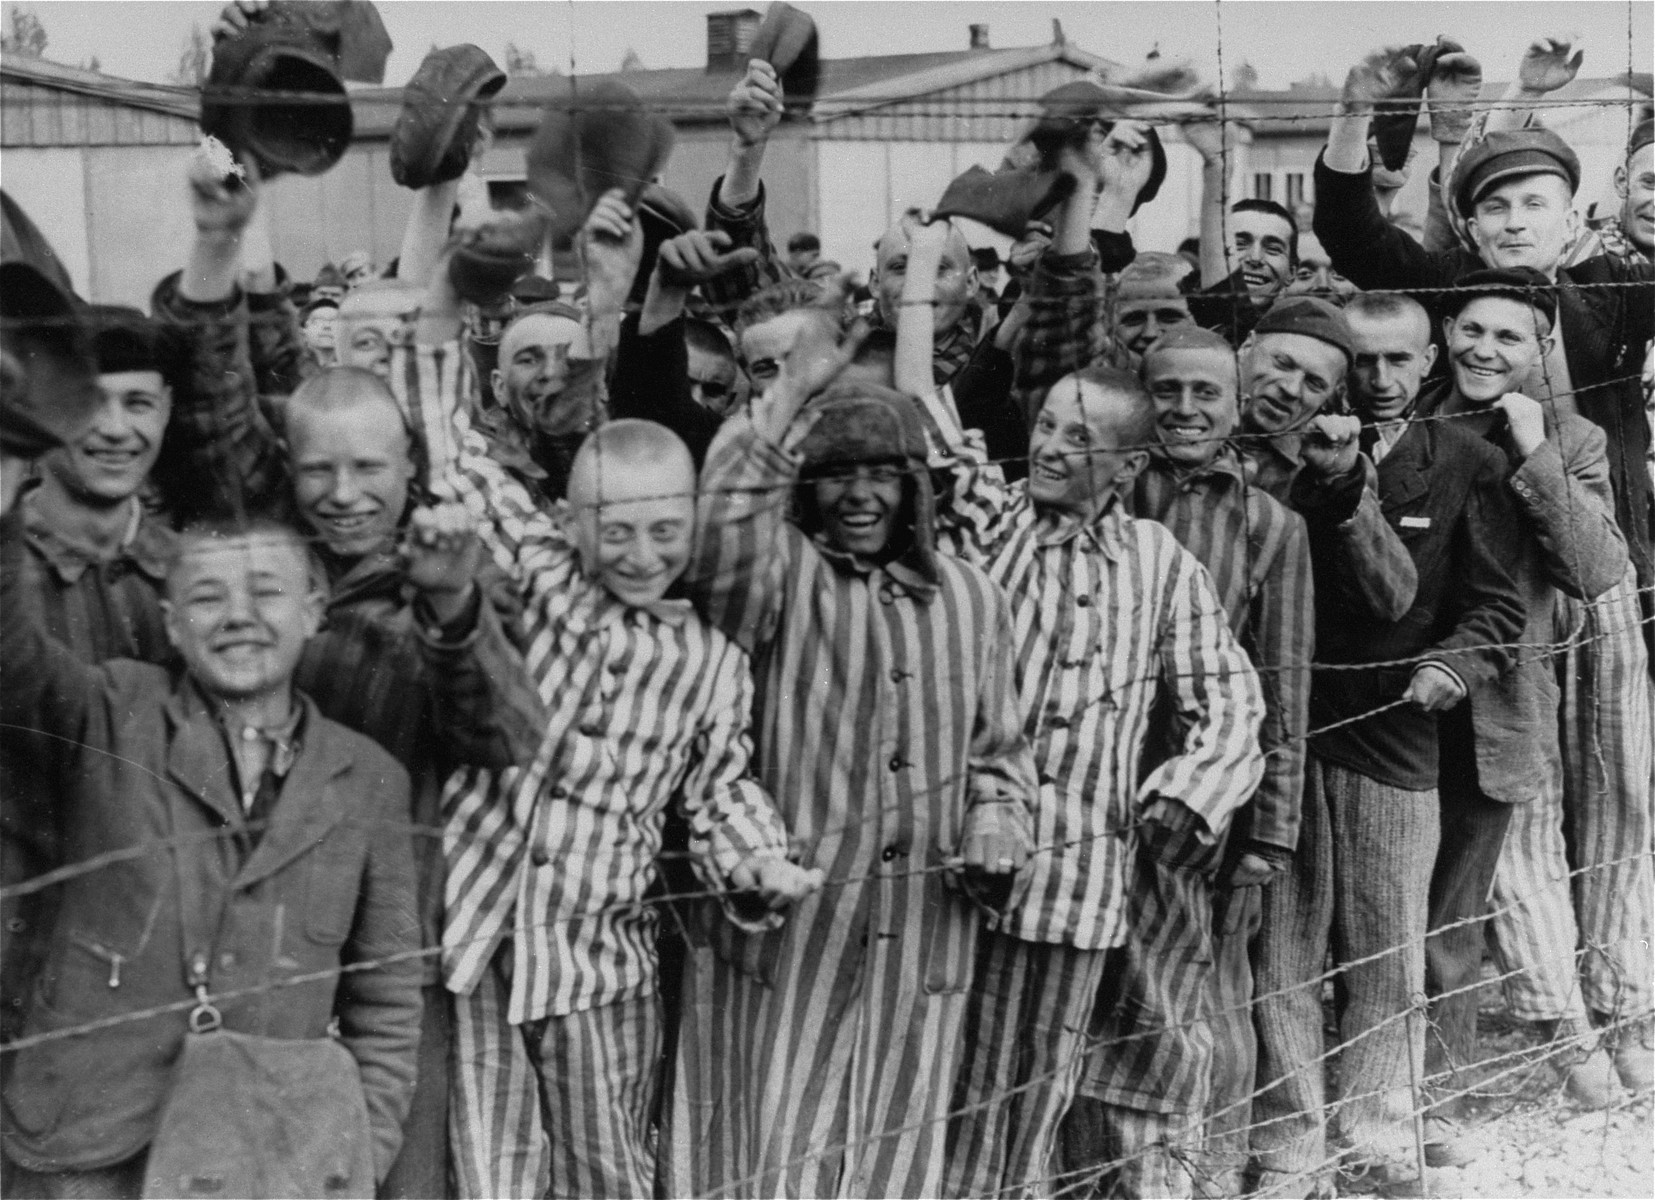 Young and old survivors in Dachau cheer approaching U.S. troops.    Among those pictured are Juda Kukiela (middle), Tevya Grojs (second from the right), David Moszkowicz (fourth from the left), and Gyorgy Laszlo Spiegel (second from the left).  Dirk Keern (far right, waving) was a Dutch political prisoner.  The boy third from the left has been identified as both Szmulek Rosental and as Josek Lerer.  The man on the far left has been identified as Alan Weisfeld.